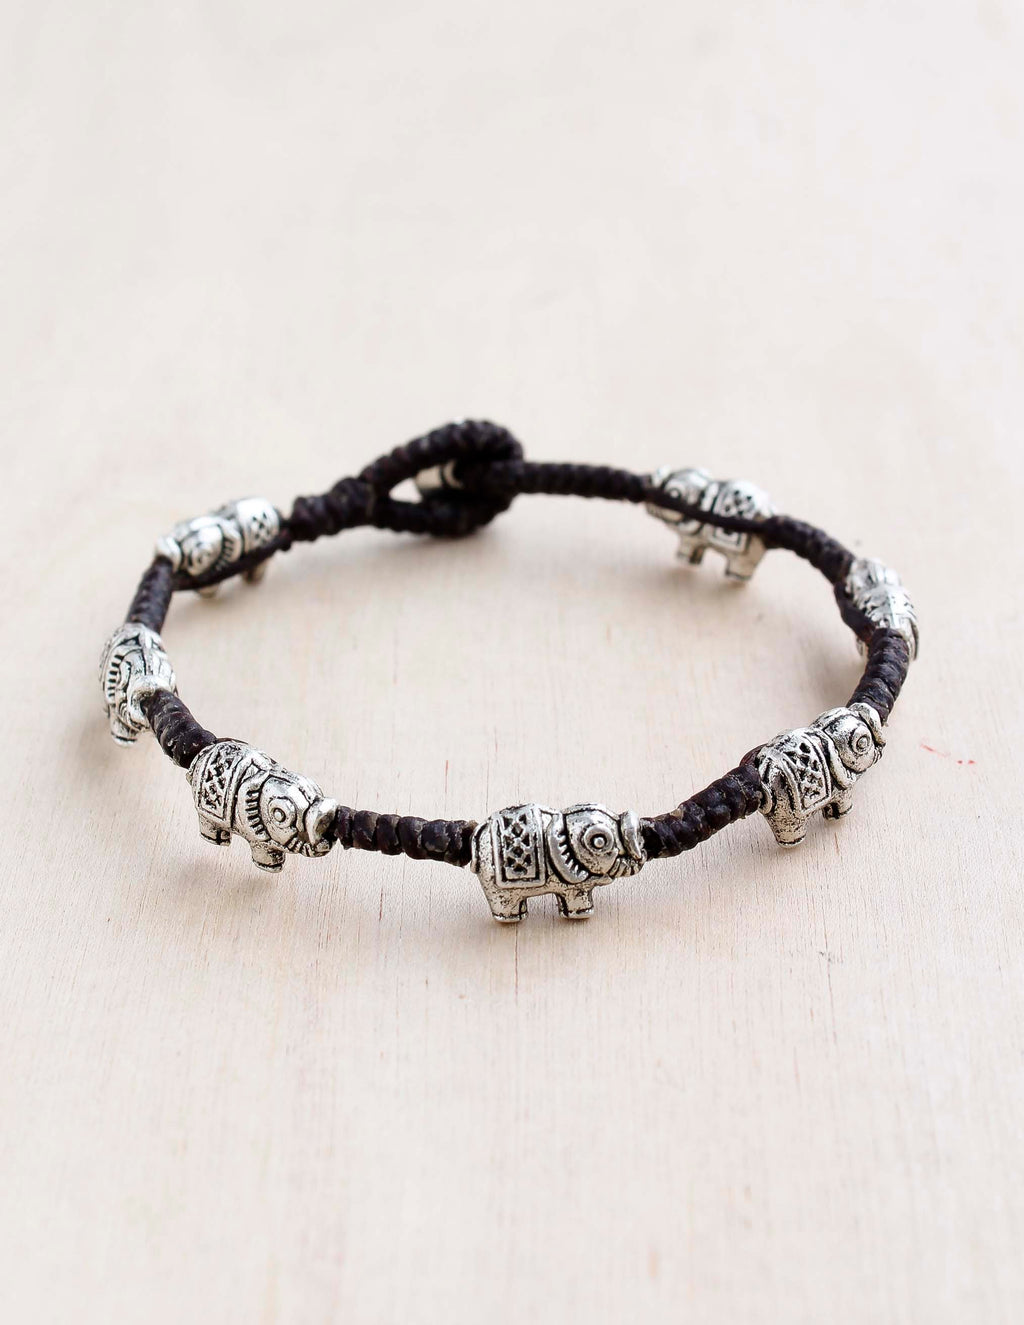 alloy, bali queen, coco rose, silver, rhodium, hypoallergenic, tribal jewelry, single strand, elephant, elephant jewelry